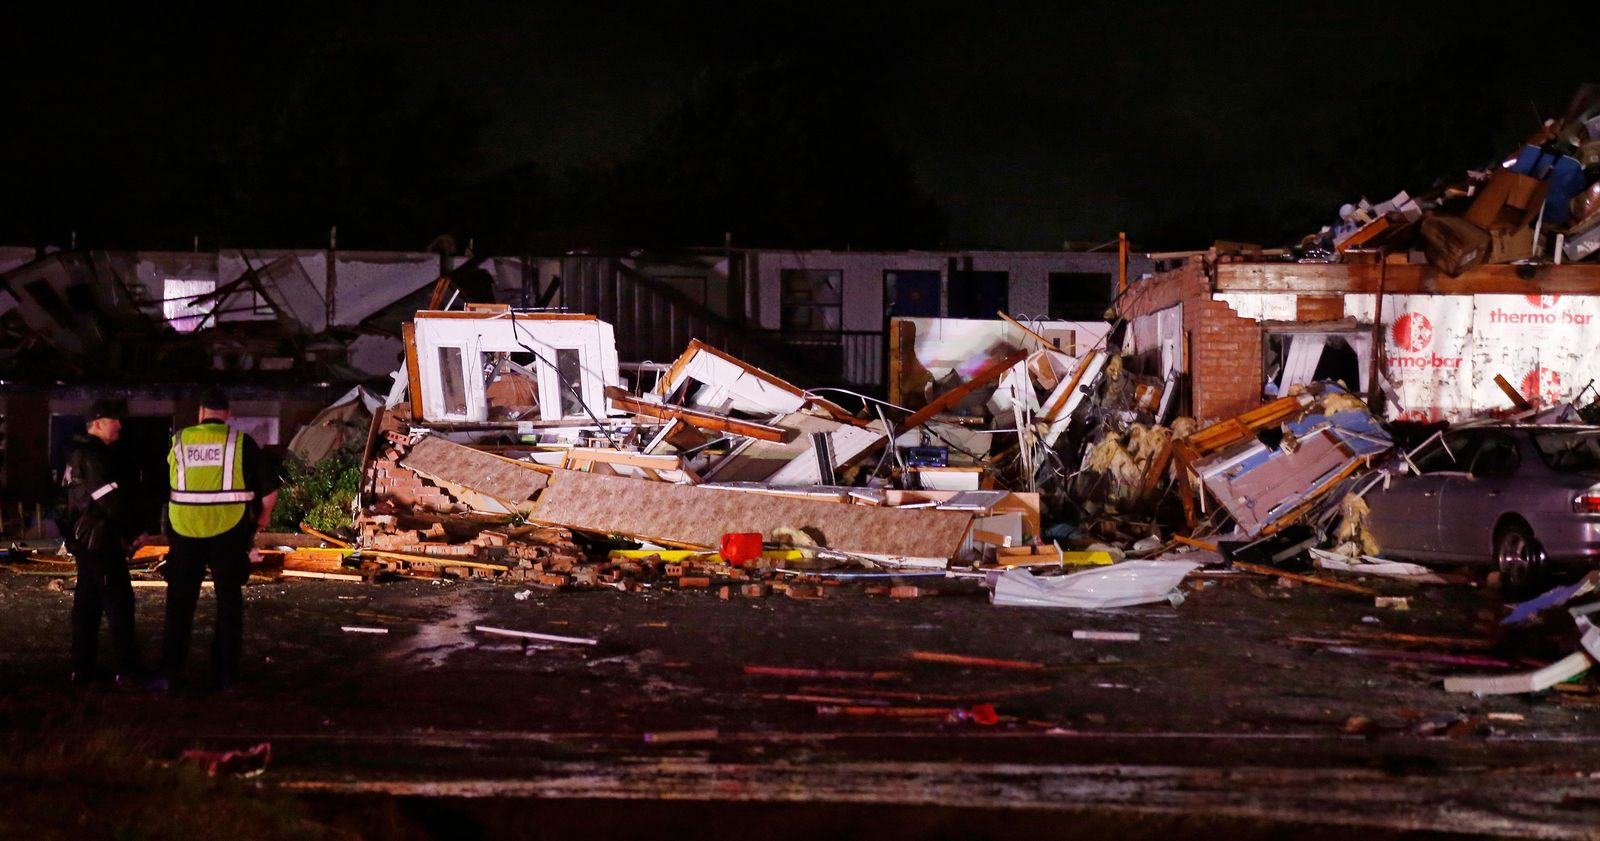 Police stand at the ruins of a hotel in El Reno, Okla., Sunday, May 26, 2019, following a likely tornado touchdown late Saturday night. (AP Photo/Sue Ogrocki)